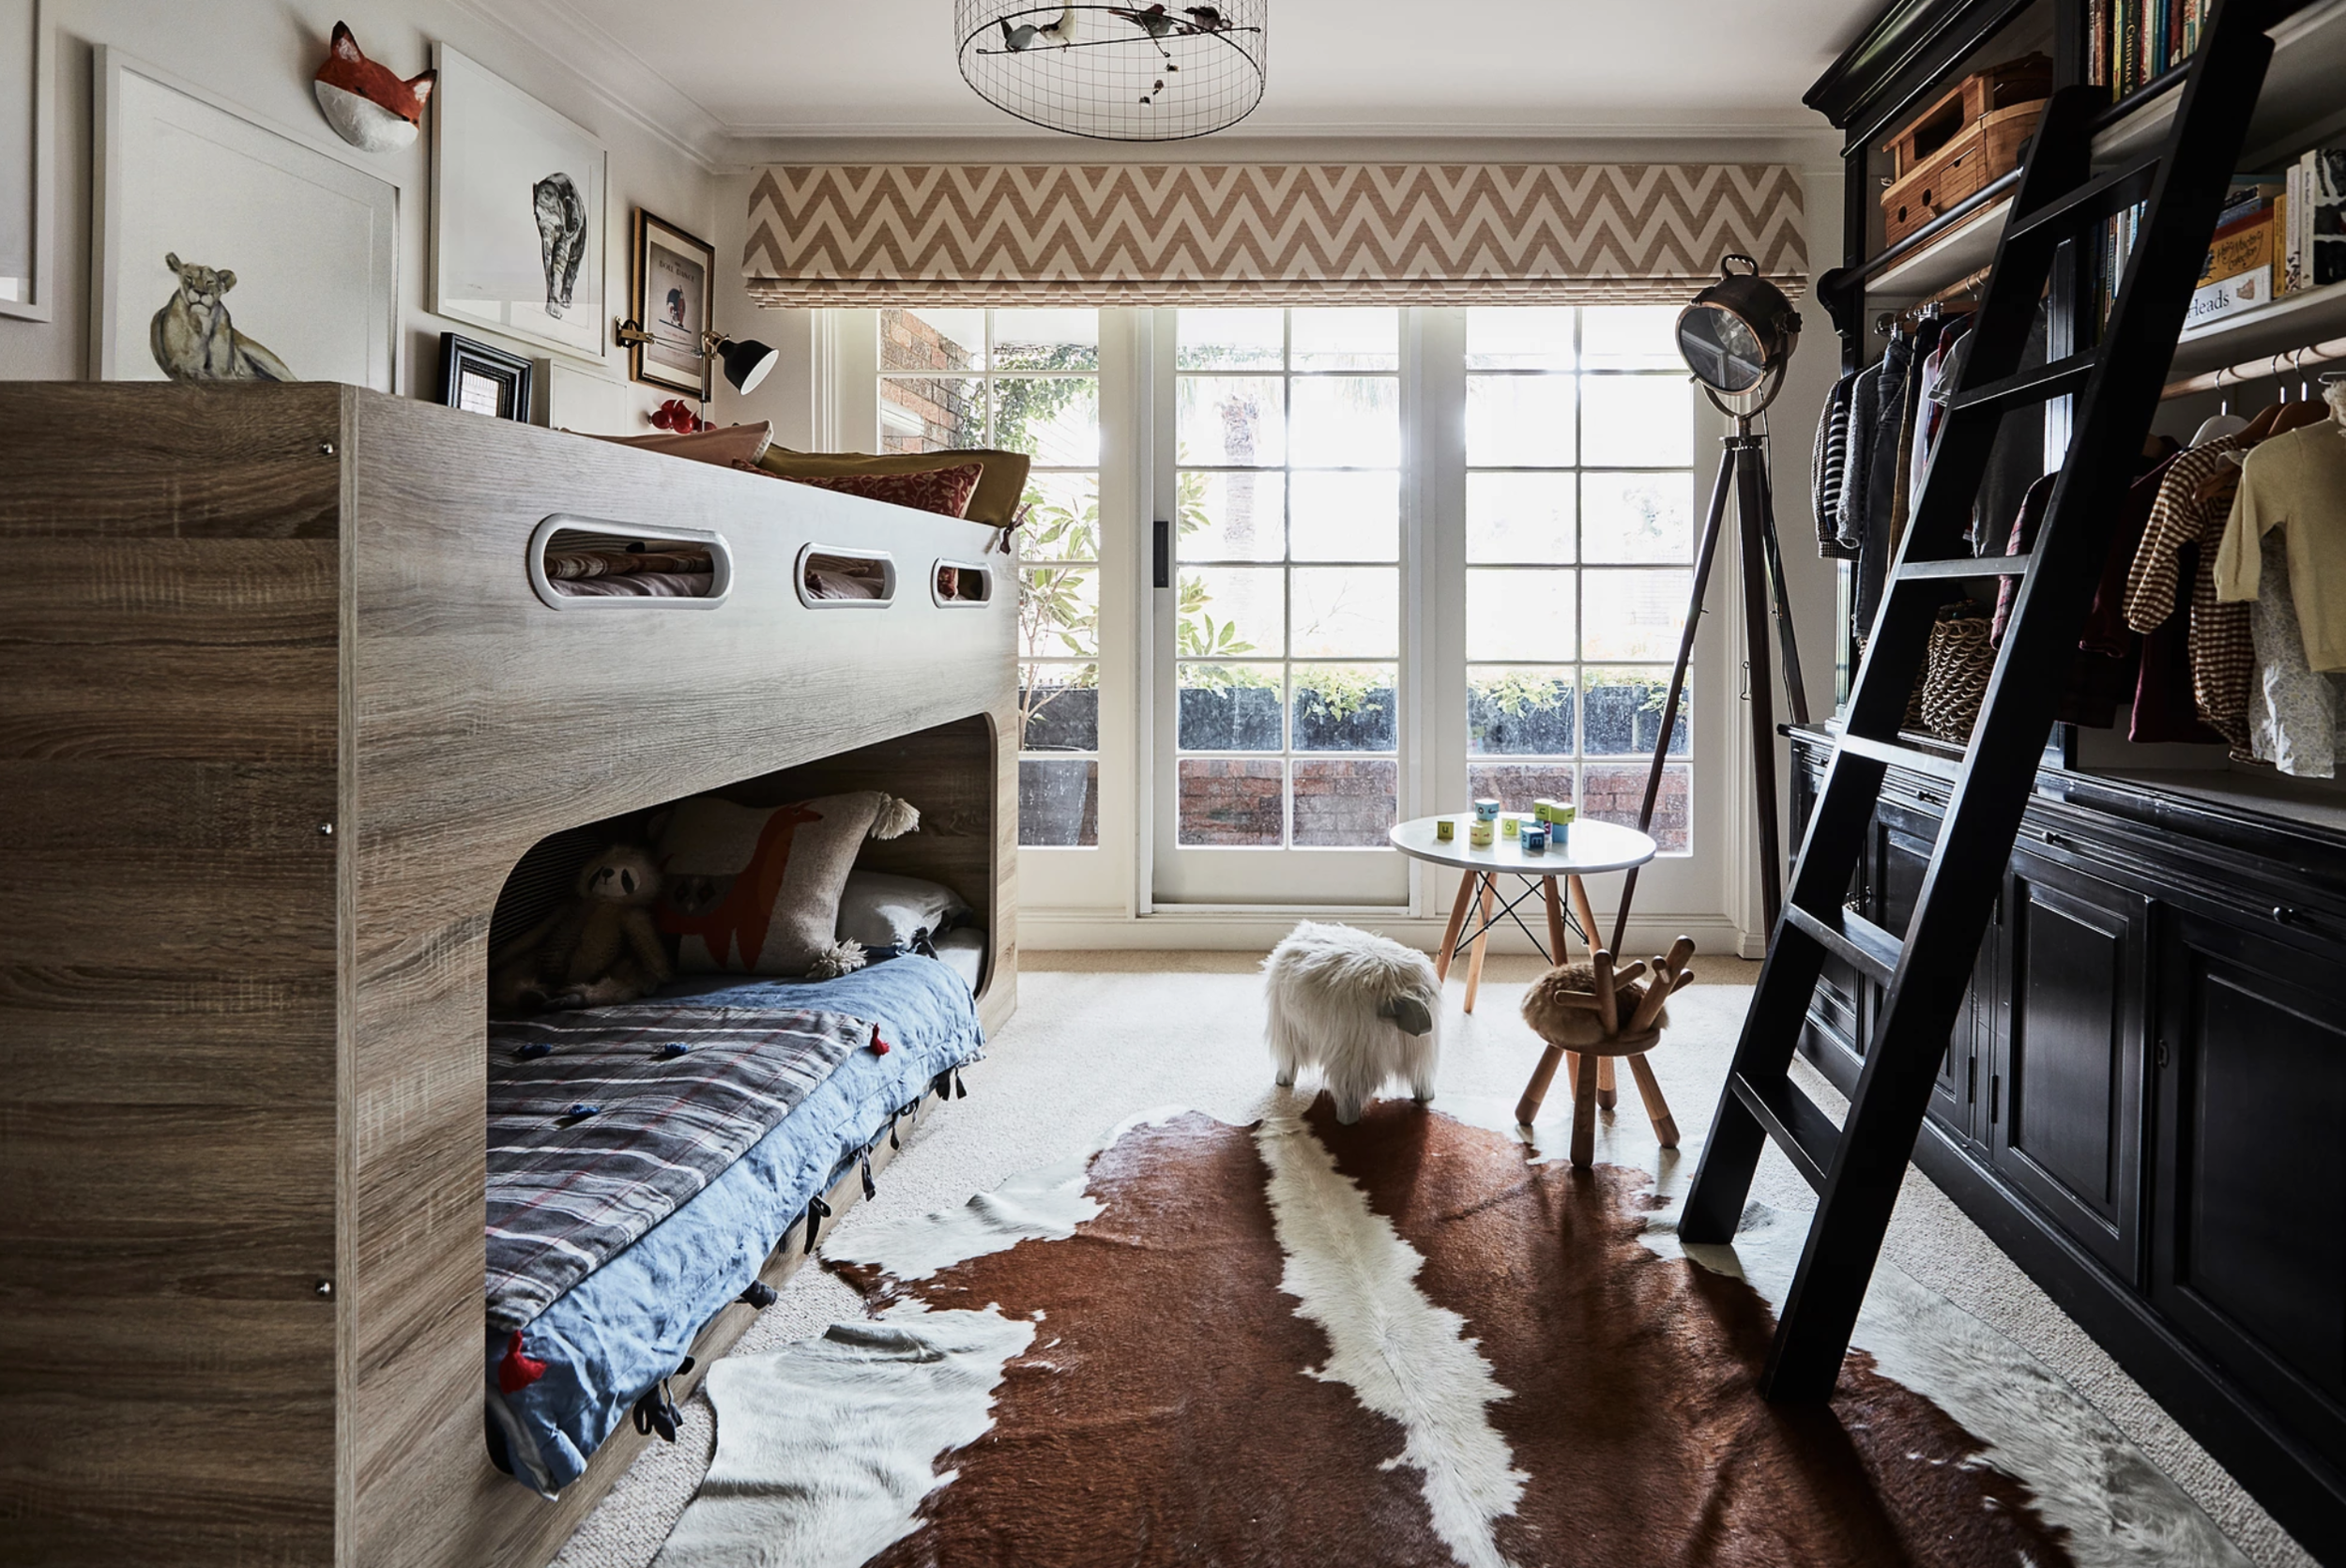 This small bedroom is jam-packed with architectural detailing and kid-friendly knick-knacks. Fun prints like the window treatment and quilts bring life to this space, and floor-length windows flood in so much natural light!